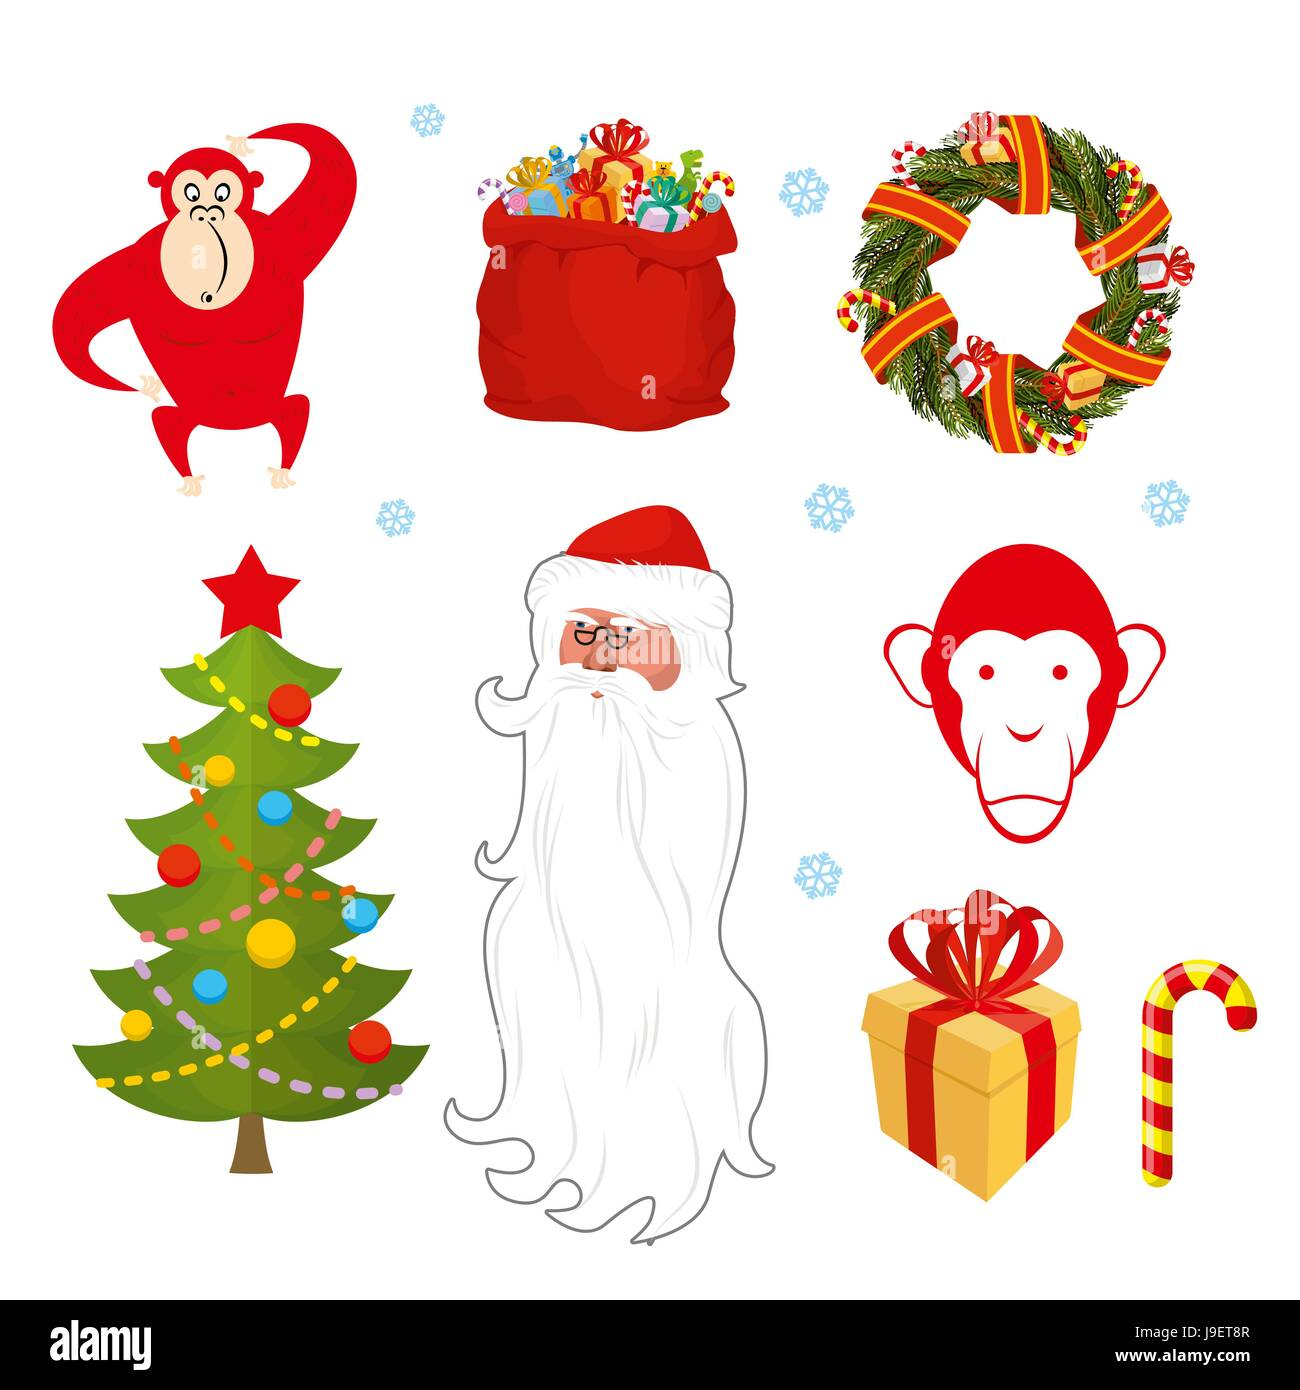 4b7e1d1c2f7 Chinese new year objects  red monkey bag Santa Claus. Wreath of pine  branches. Christmas tree decorated with festive. Gift box with red